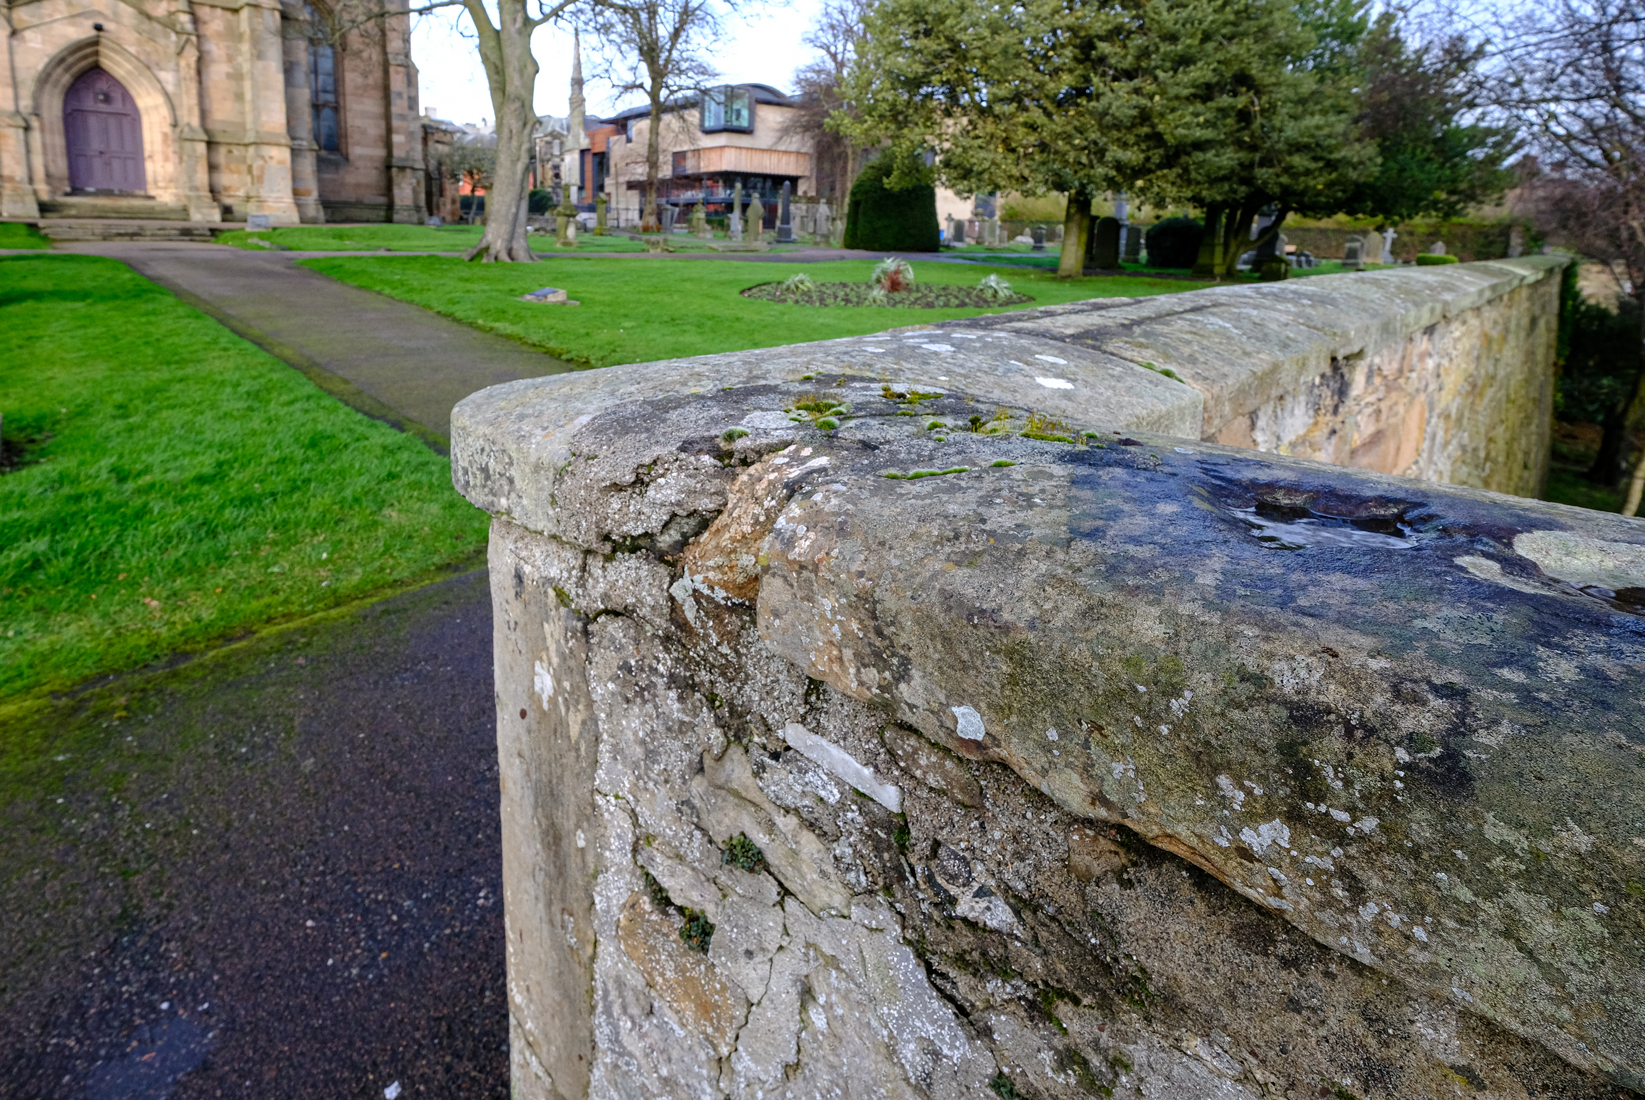 Corner of boundary wall for Abbey Graveyard. The wall is stone and 120cm high. About 20cm from top is a white rectangular stone 2cm tall and 10cm long